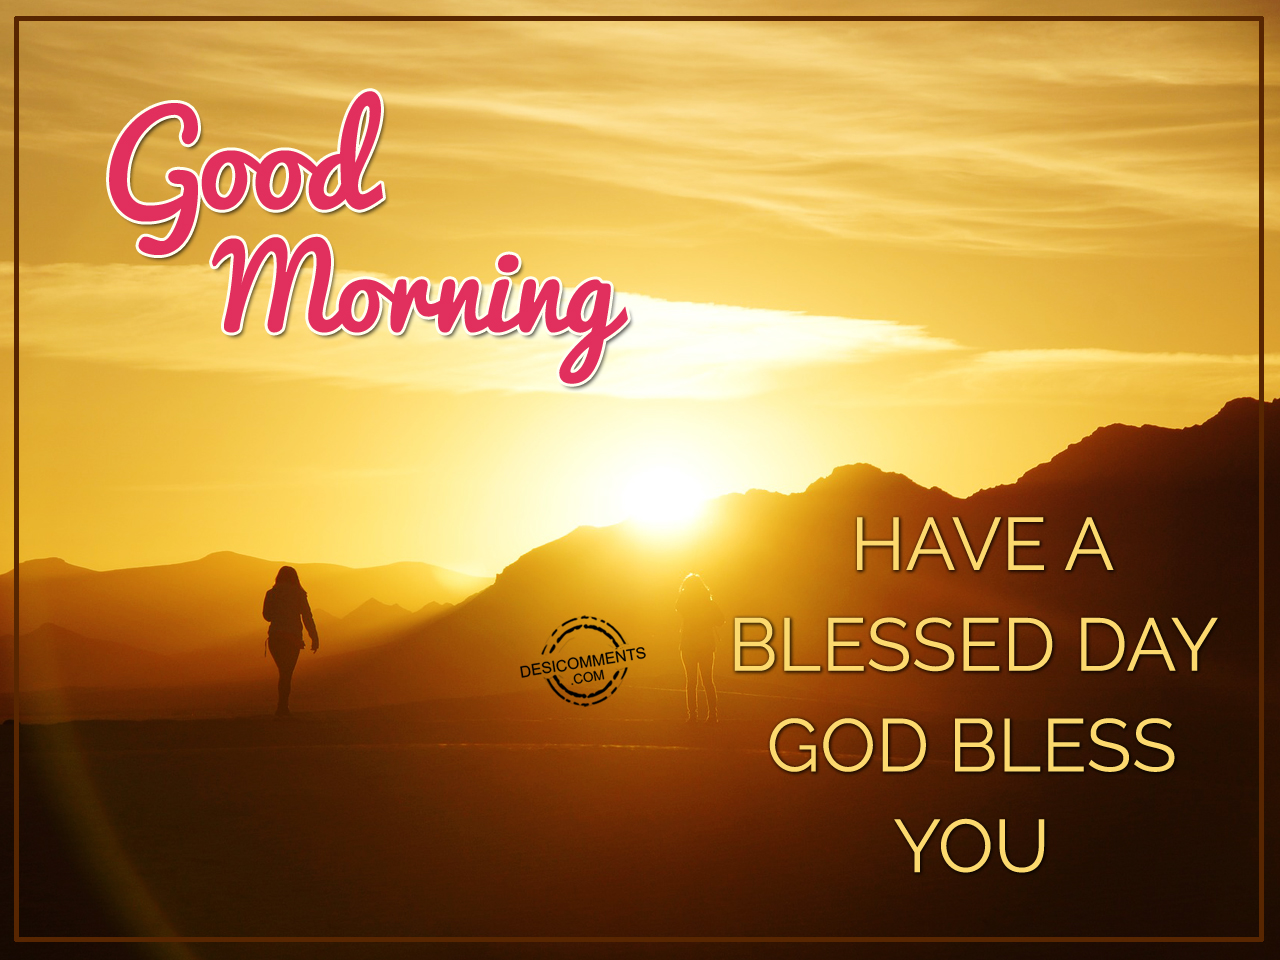 Good Morning God Bless You Have A Blessed Day God...